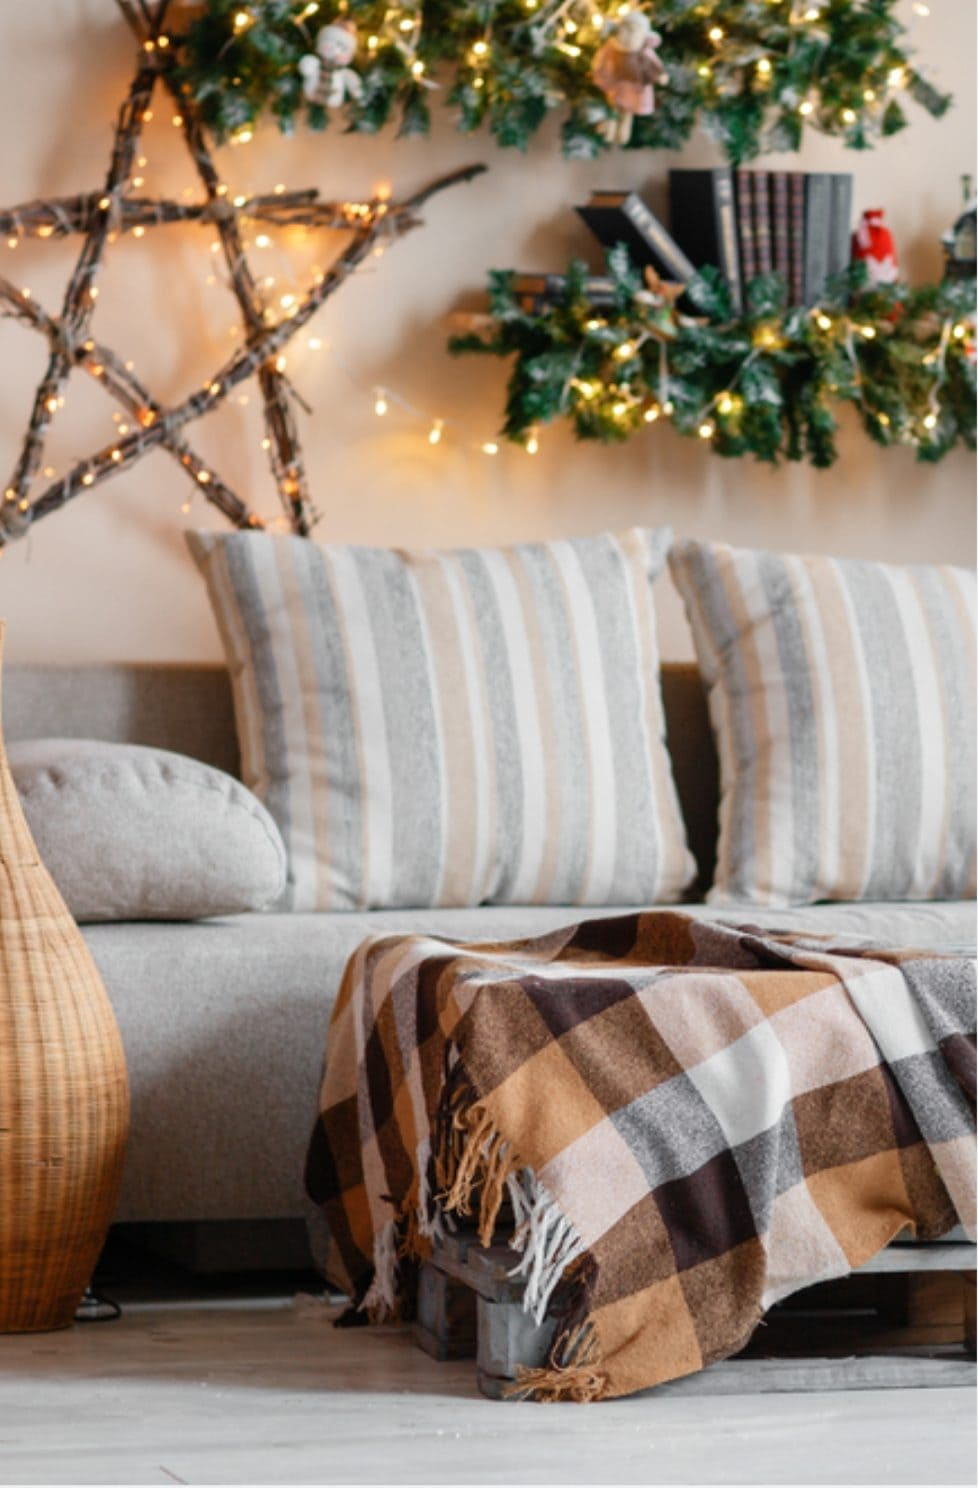 Christmas Decorating Ideas To Make Your Home Sparkle!